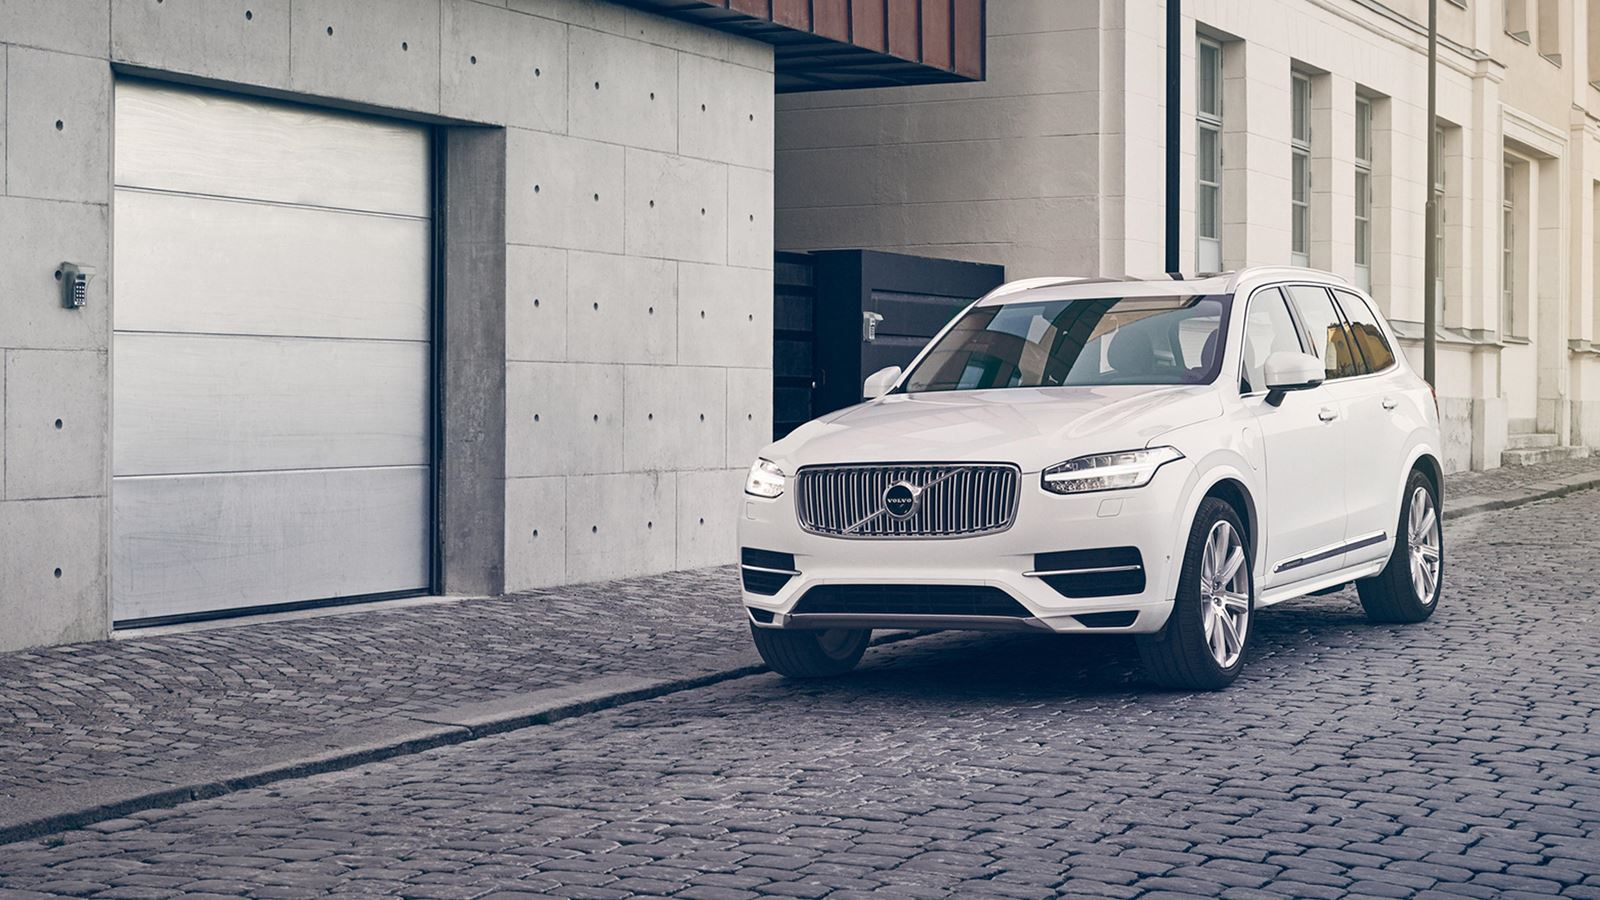 2019 Volvo XC90 for sale near Fort Lauderdale, Miami, FL